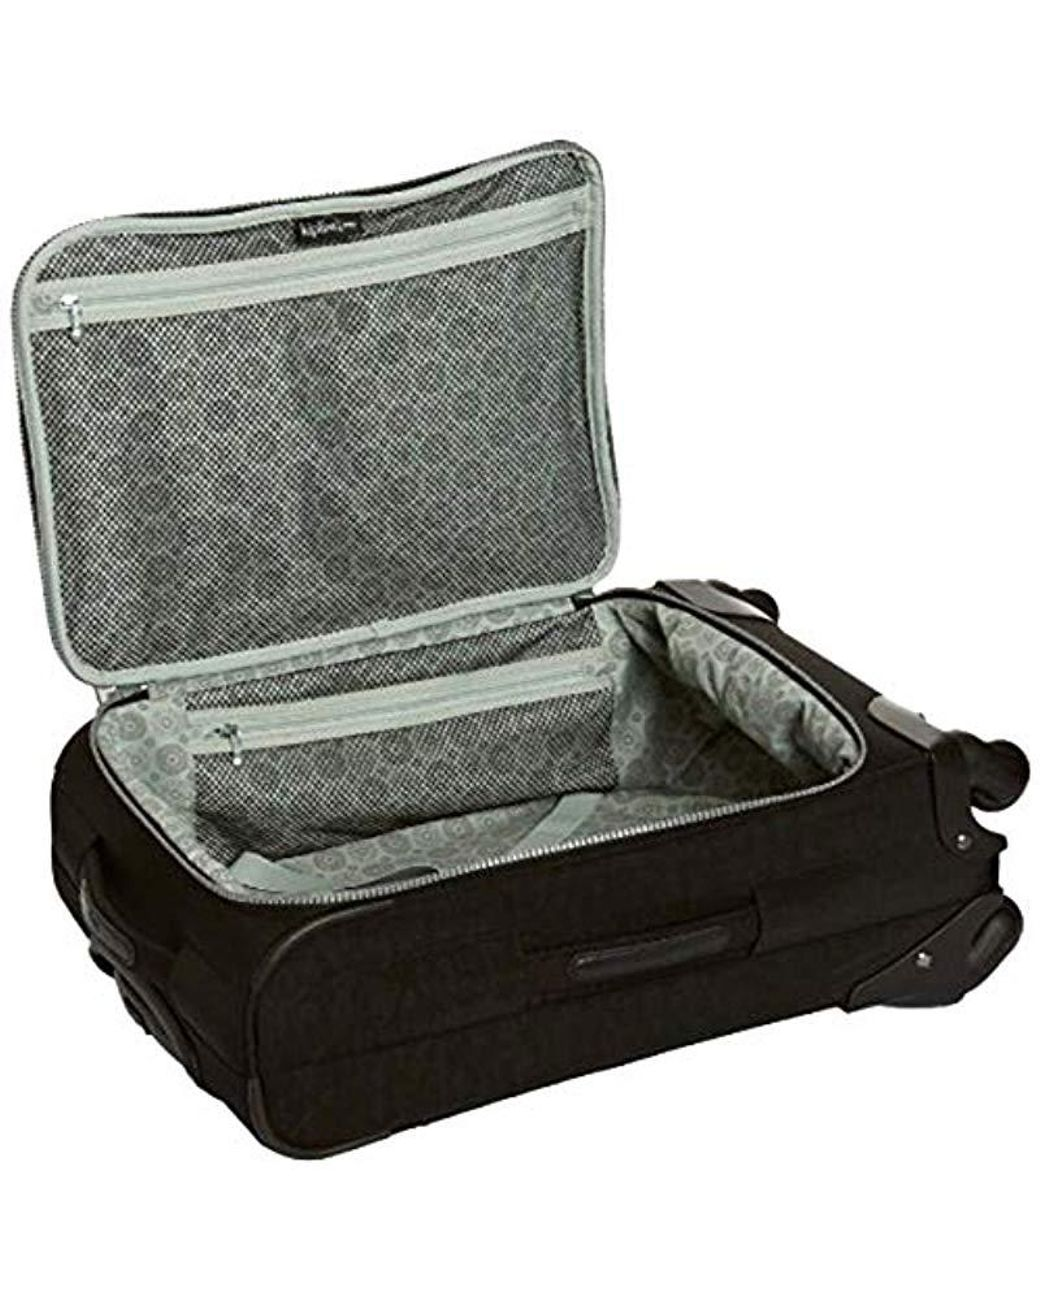 aab01e9947d Kipling Youri Spin 55 Dazz Black Small Wheeled Luggage in Black - Lyst